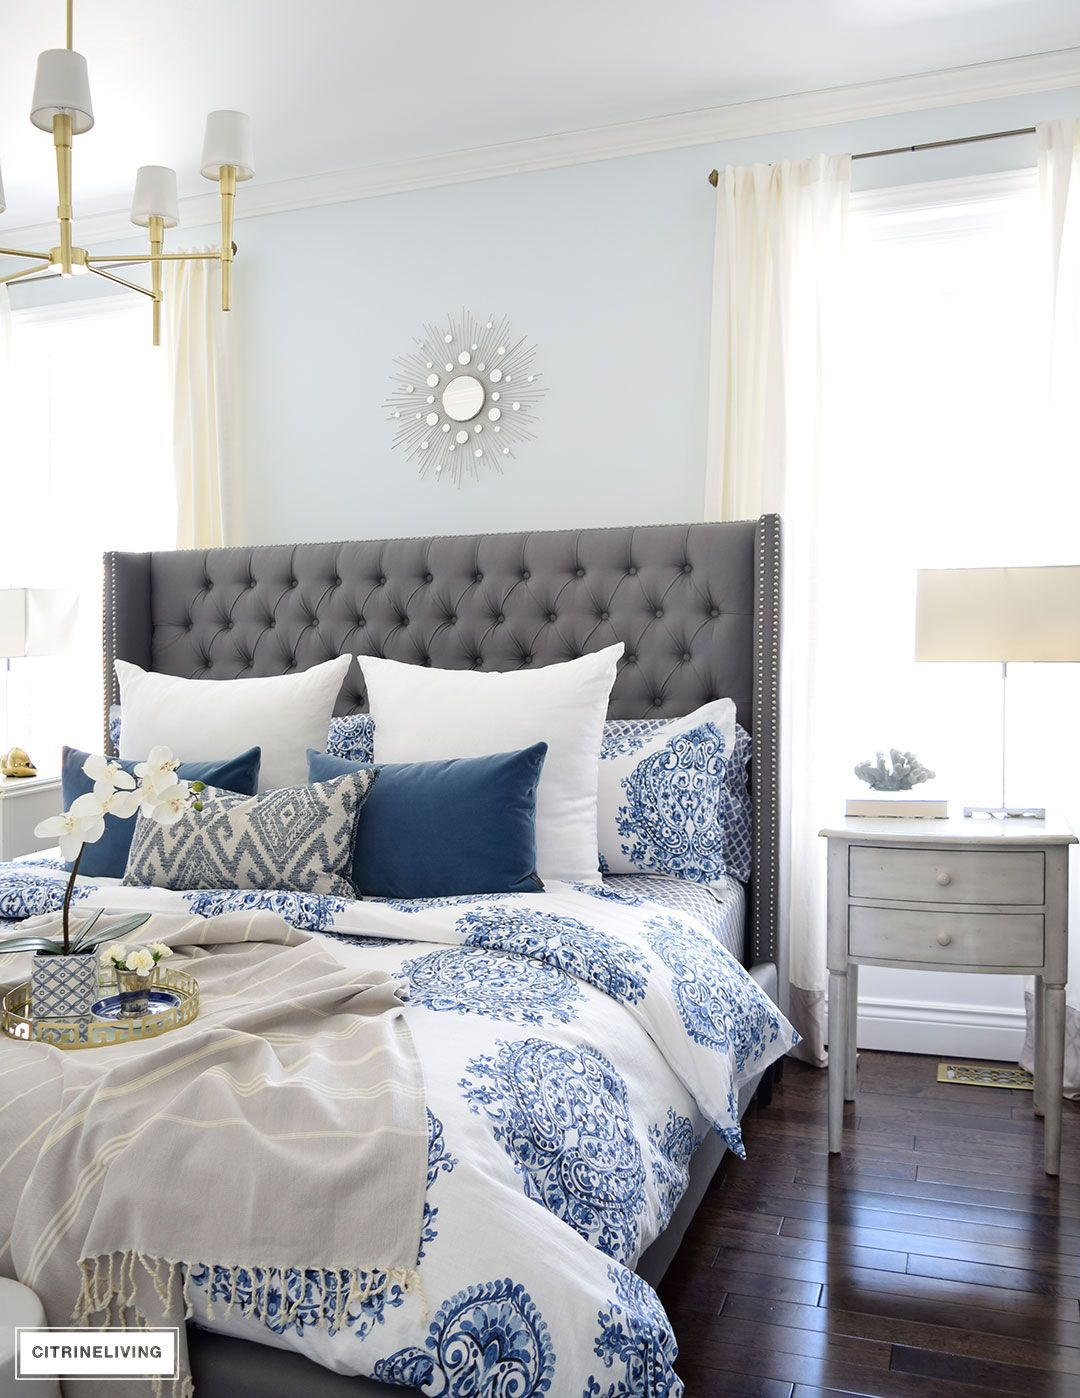 Best Spring In Full Swing Home Tour 2017 Blue White Bedding 400 x 300